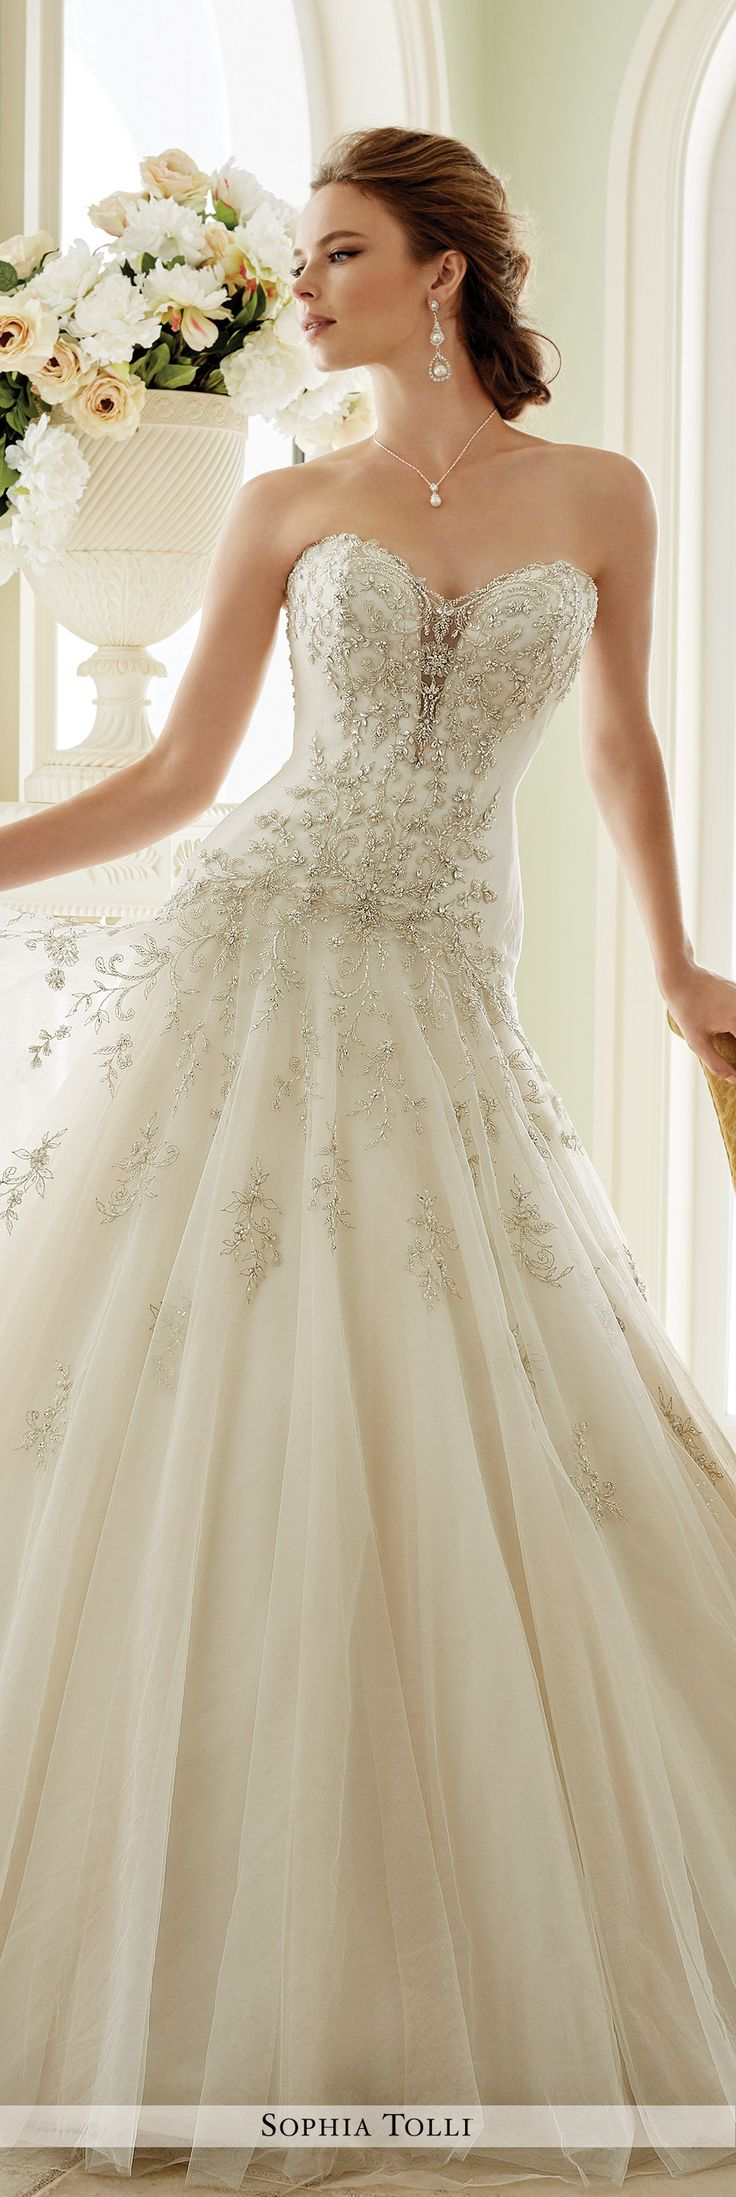 17 Best Images About Sophia Tolli Wedding Dresses On Pinterest Fit And Flar